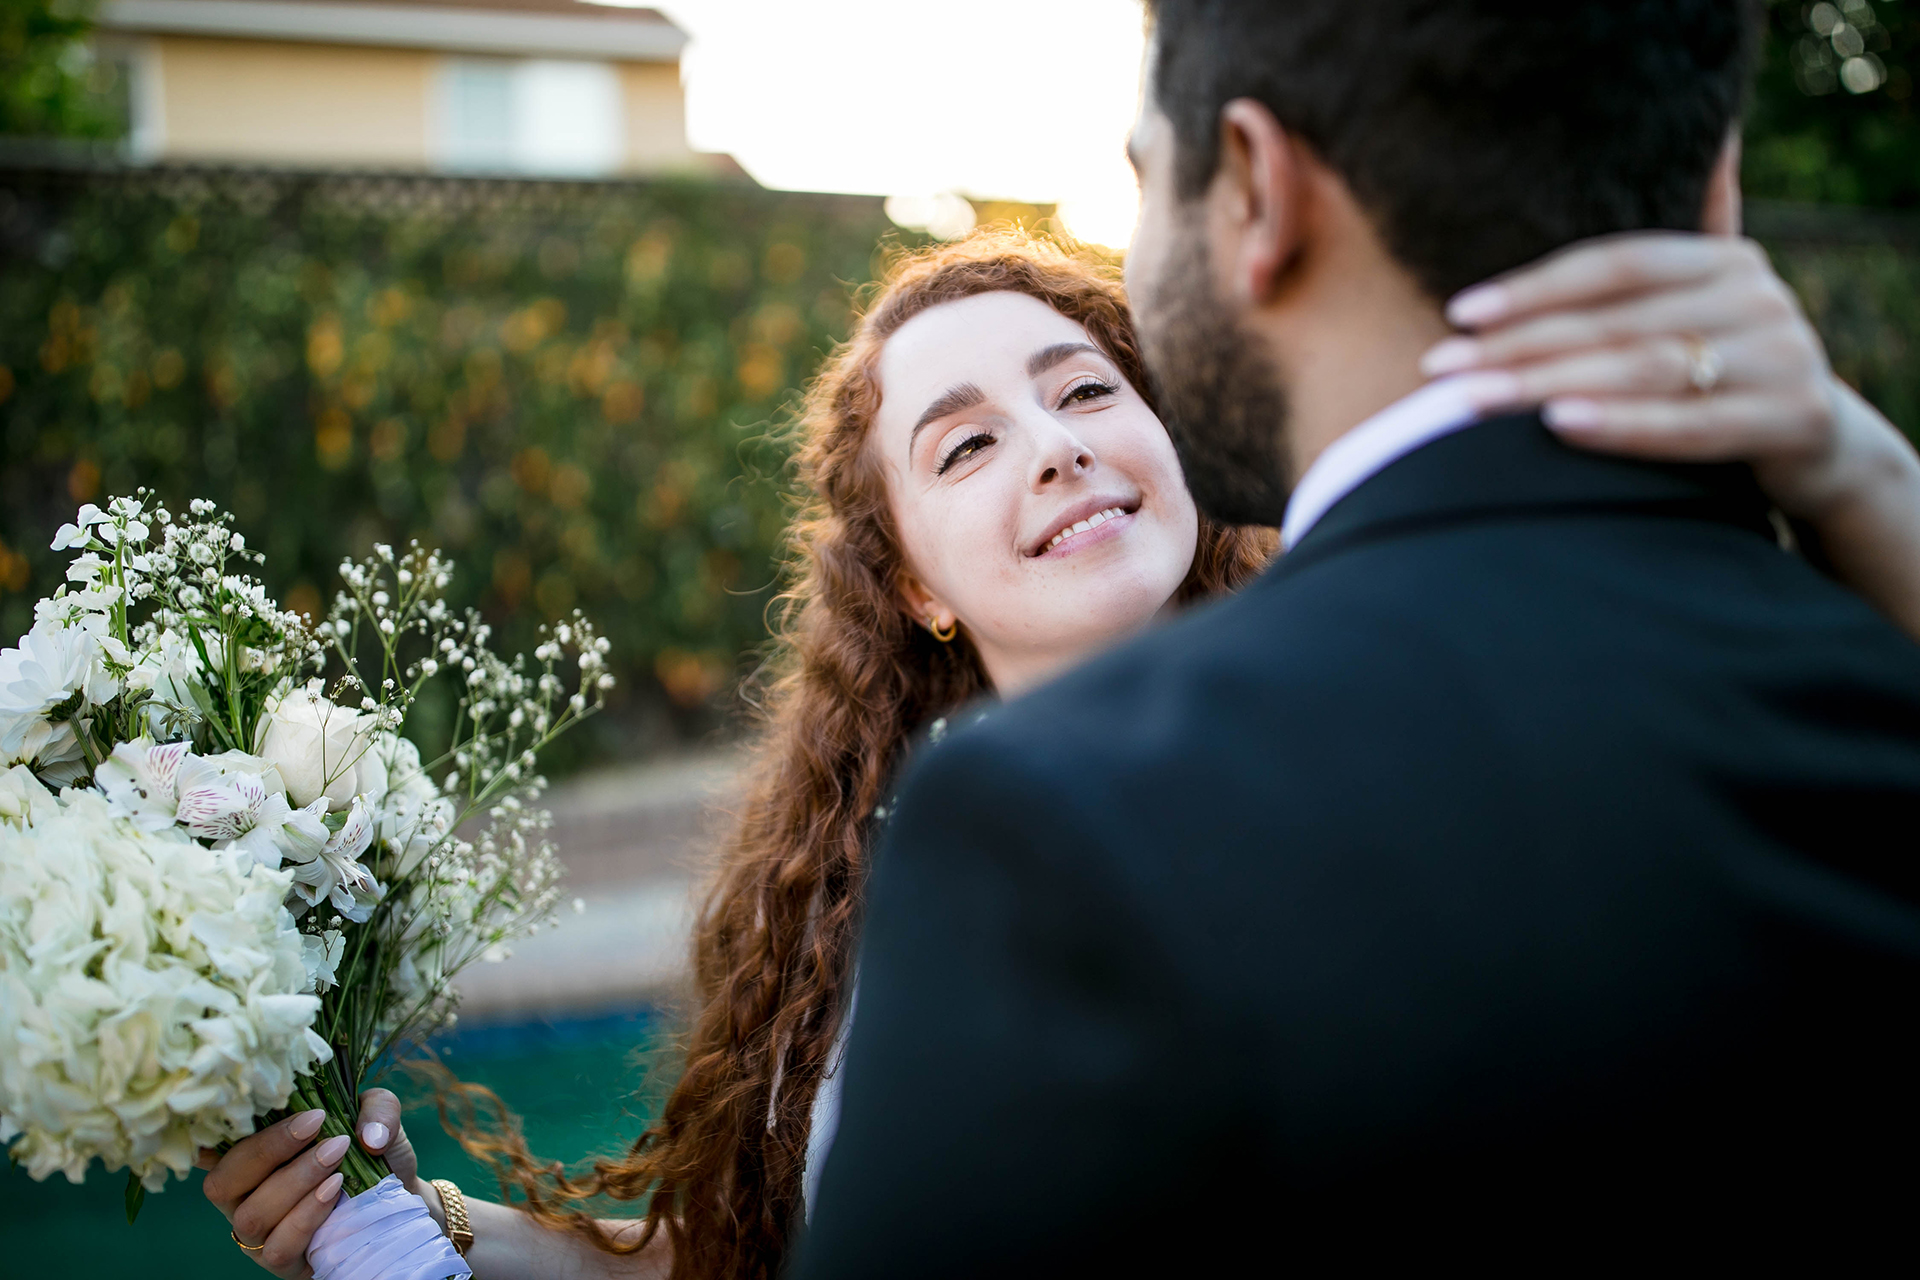 California Elopement Couple Portrait | The bride, happily married, gazes into the groom's eyes